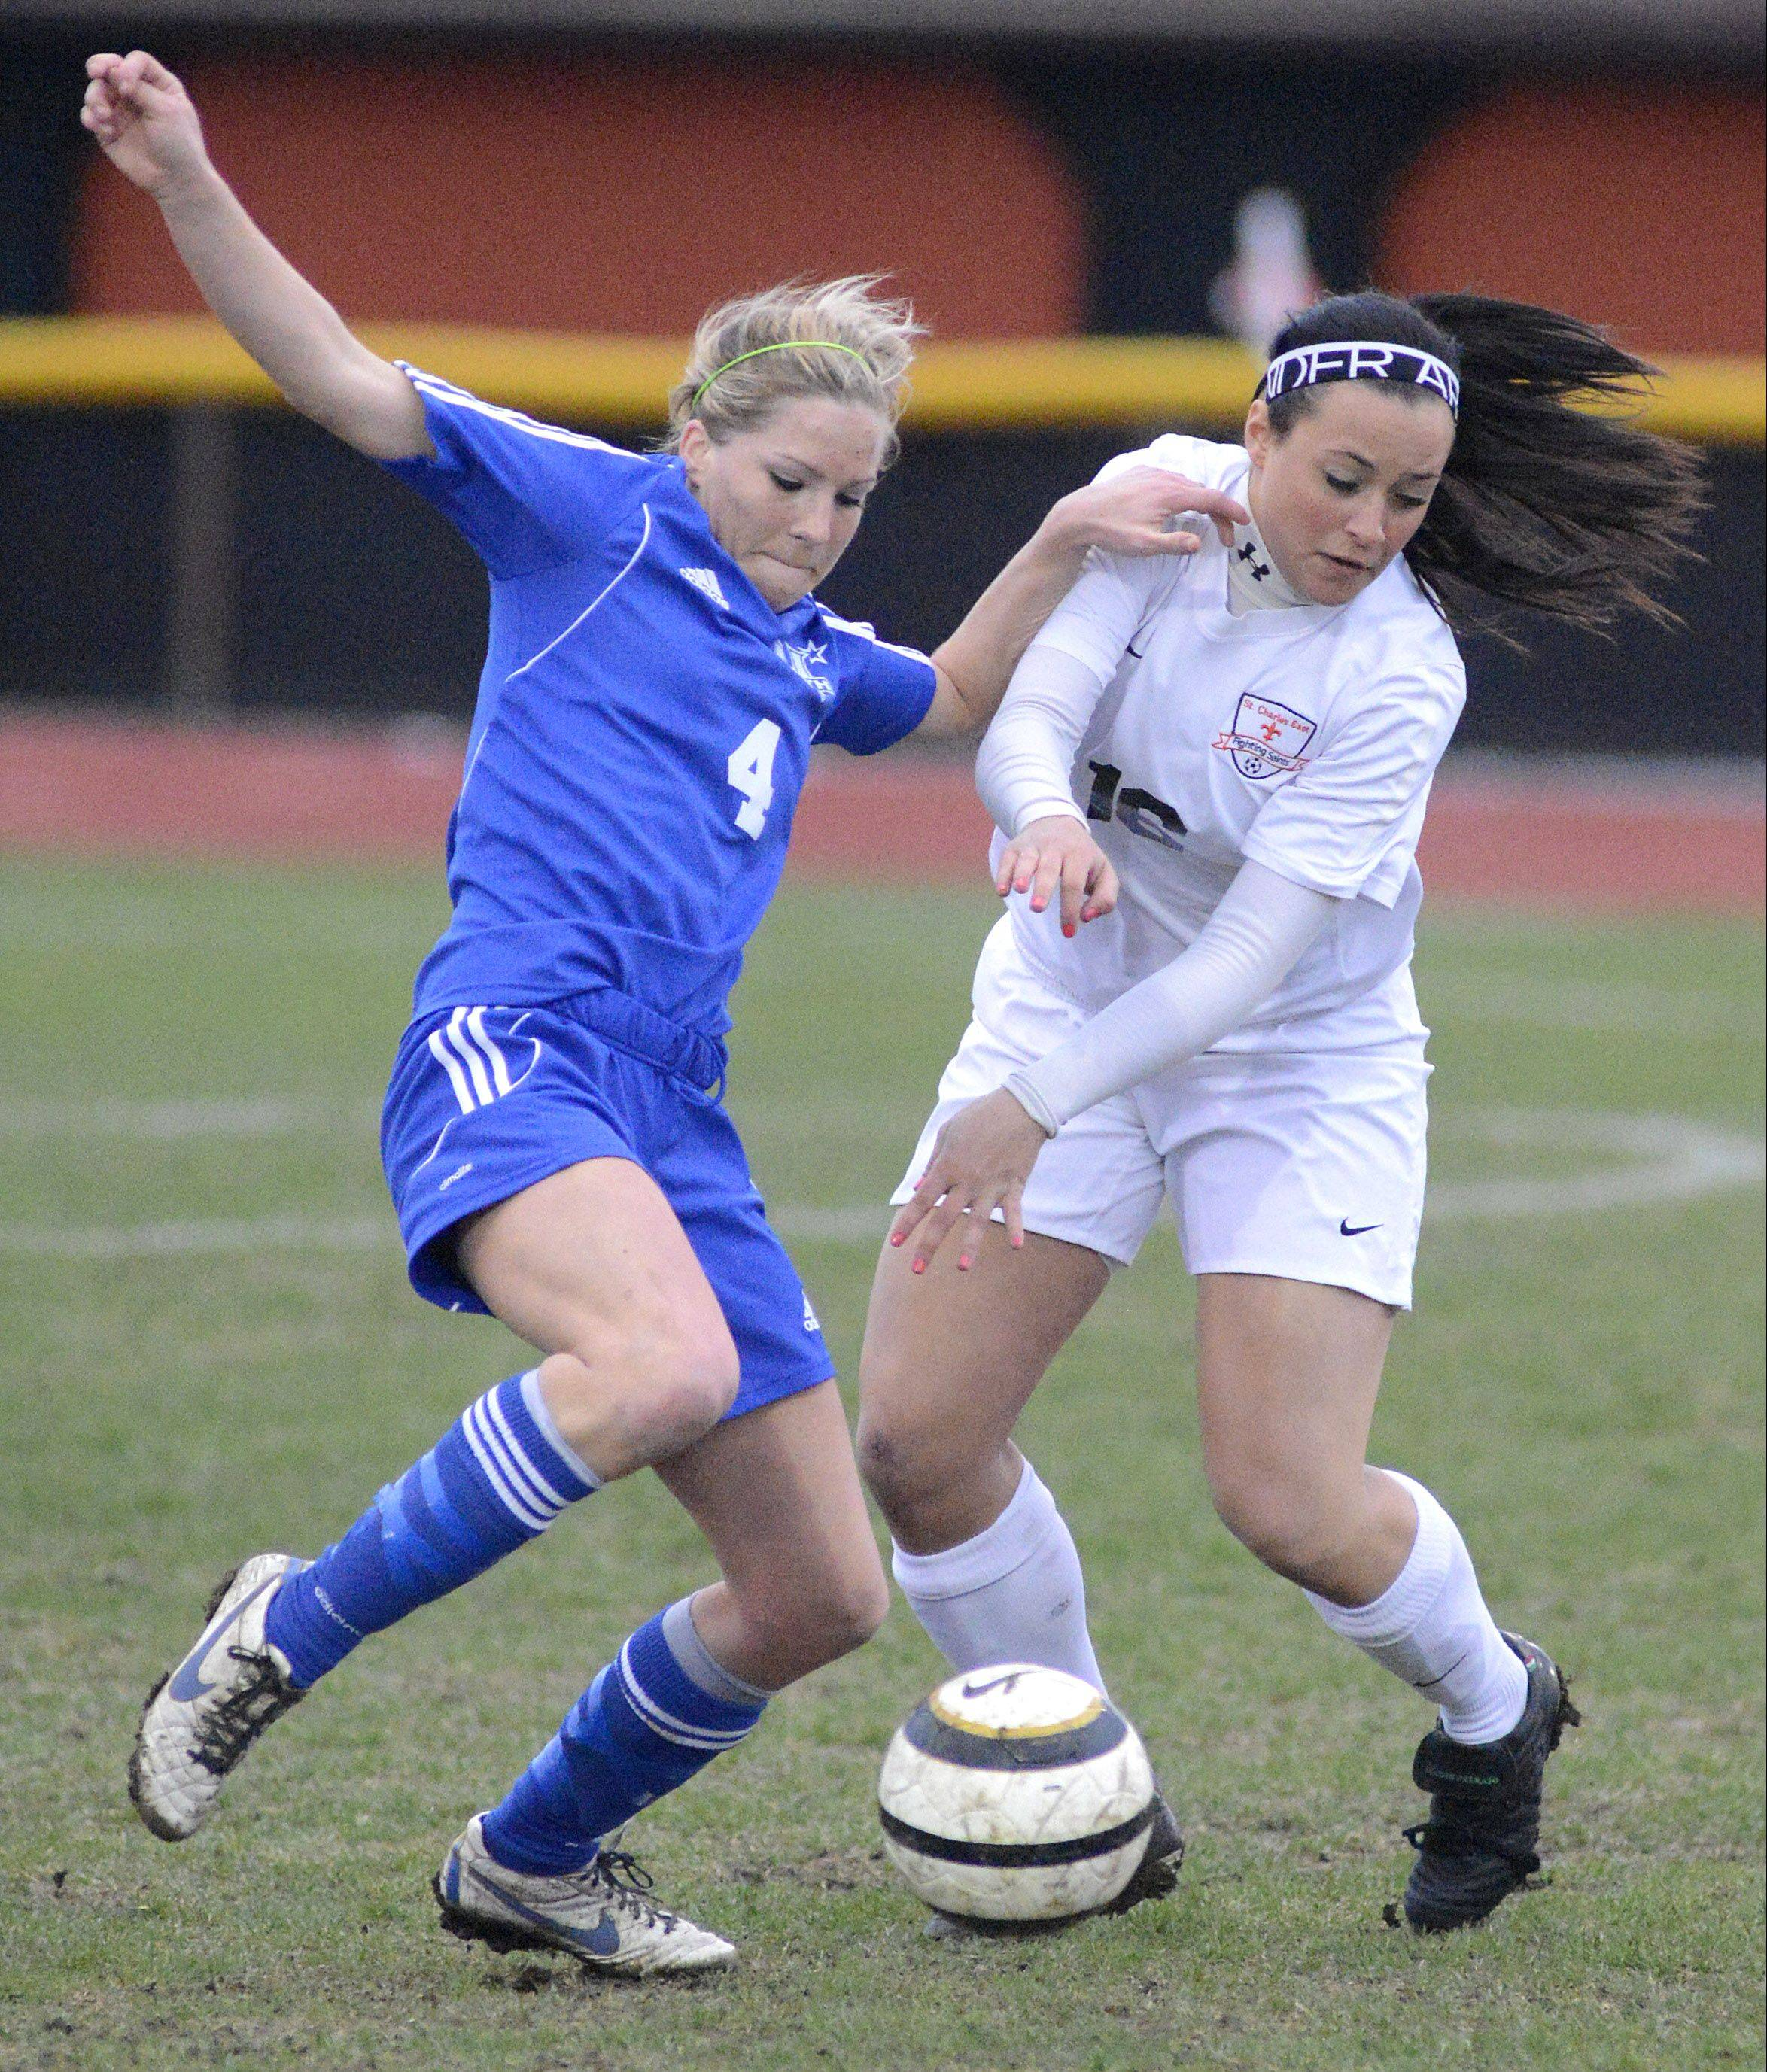 St. Charles North's Jenny Barr and St. Charles East's Hannah Rawson fight for possession of the ball.